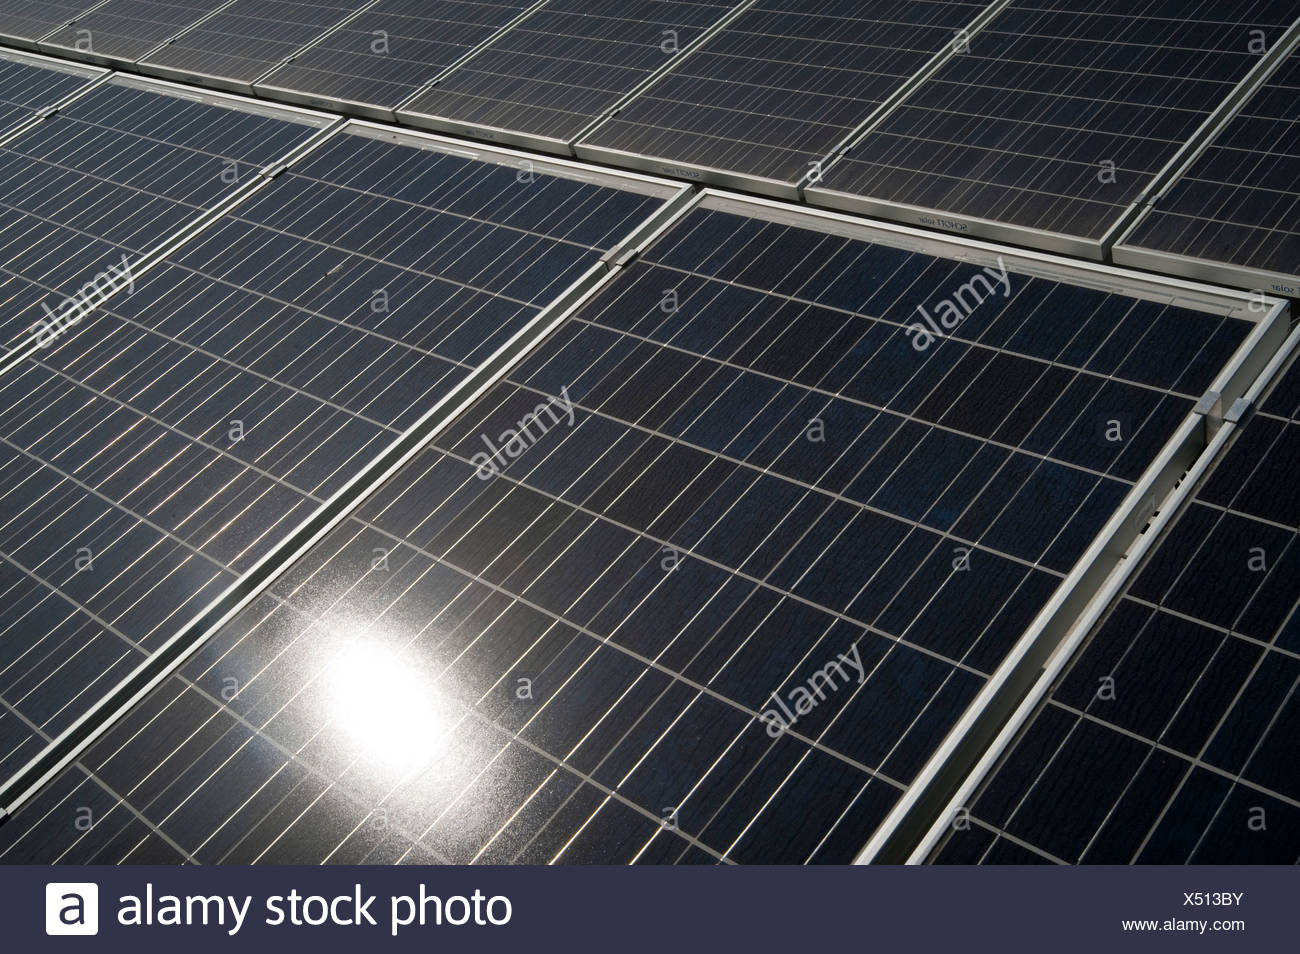 Electricity converting solar panels - Stock Image